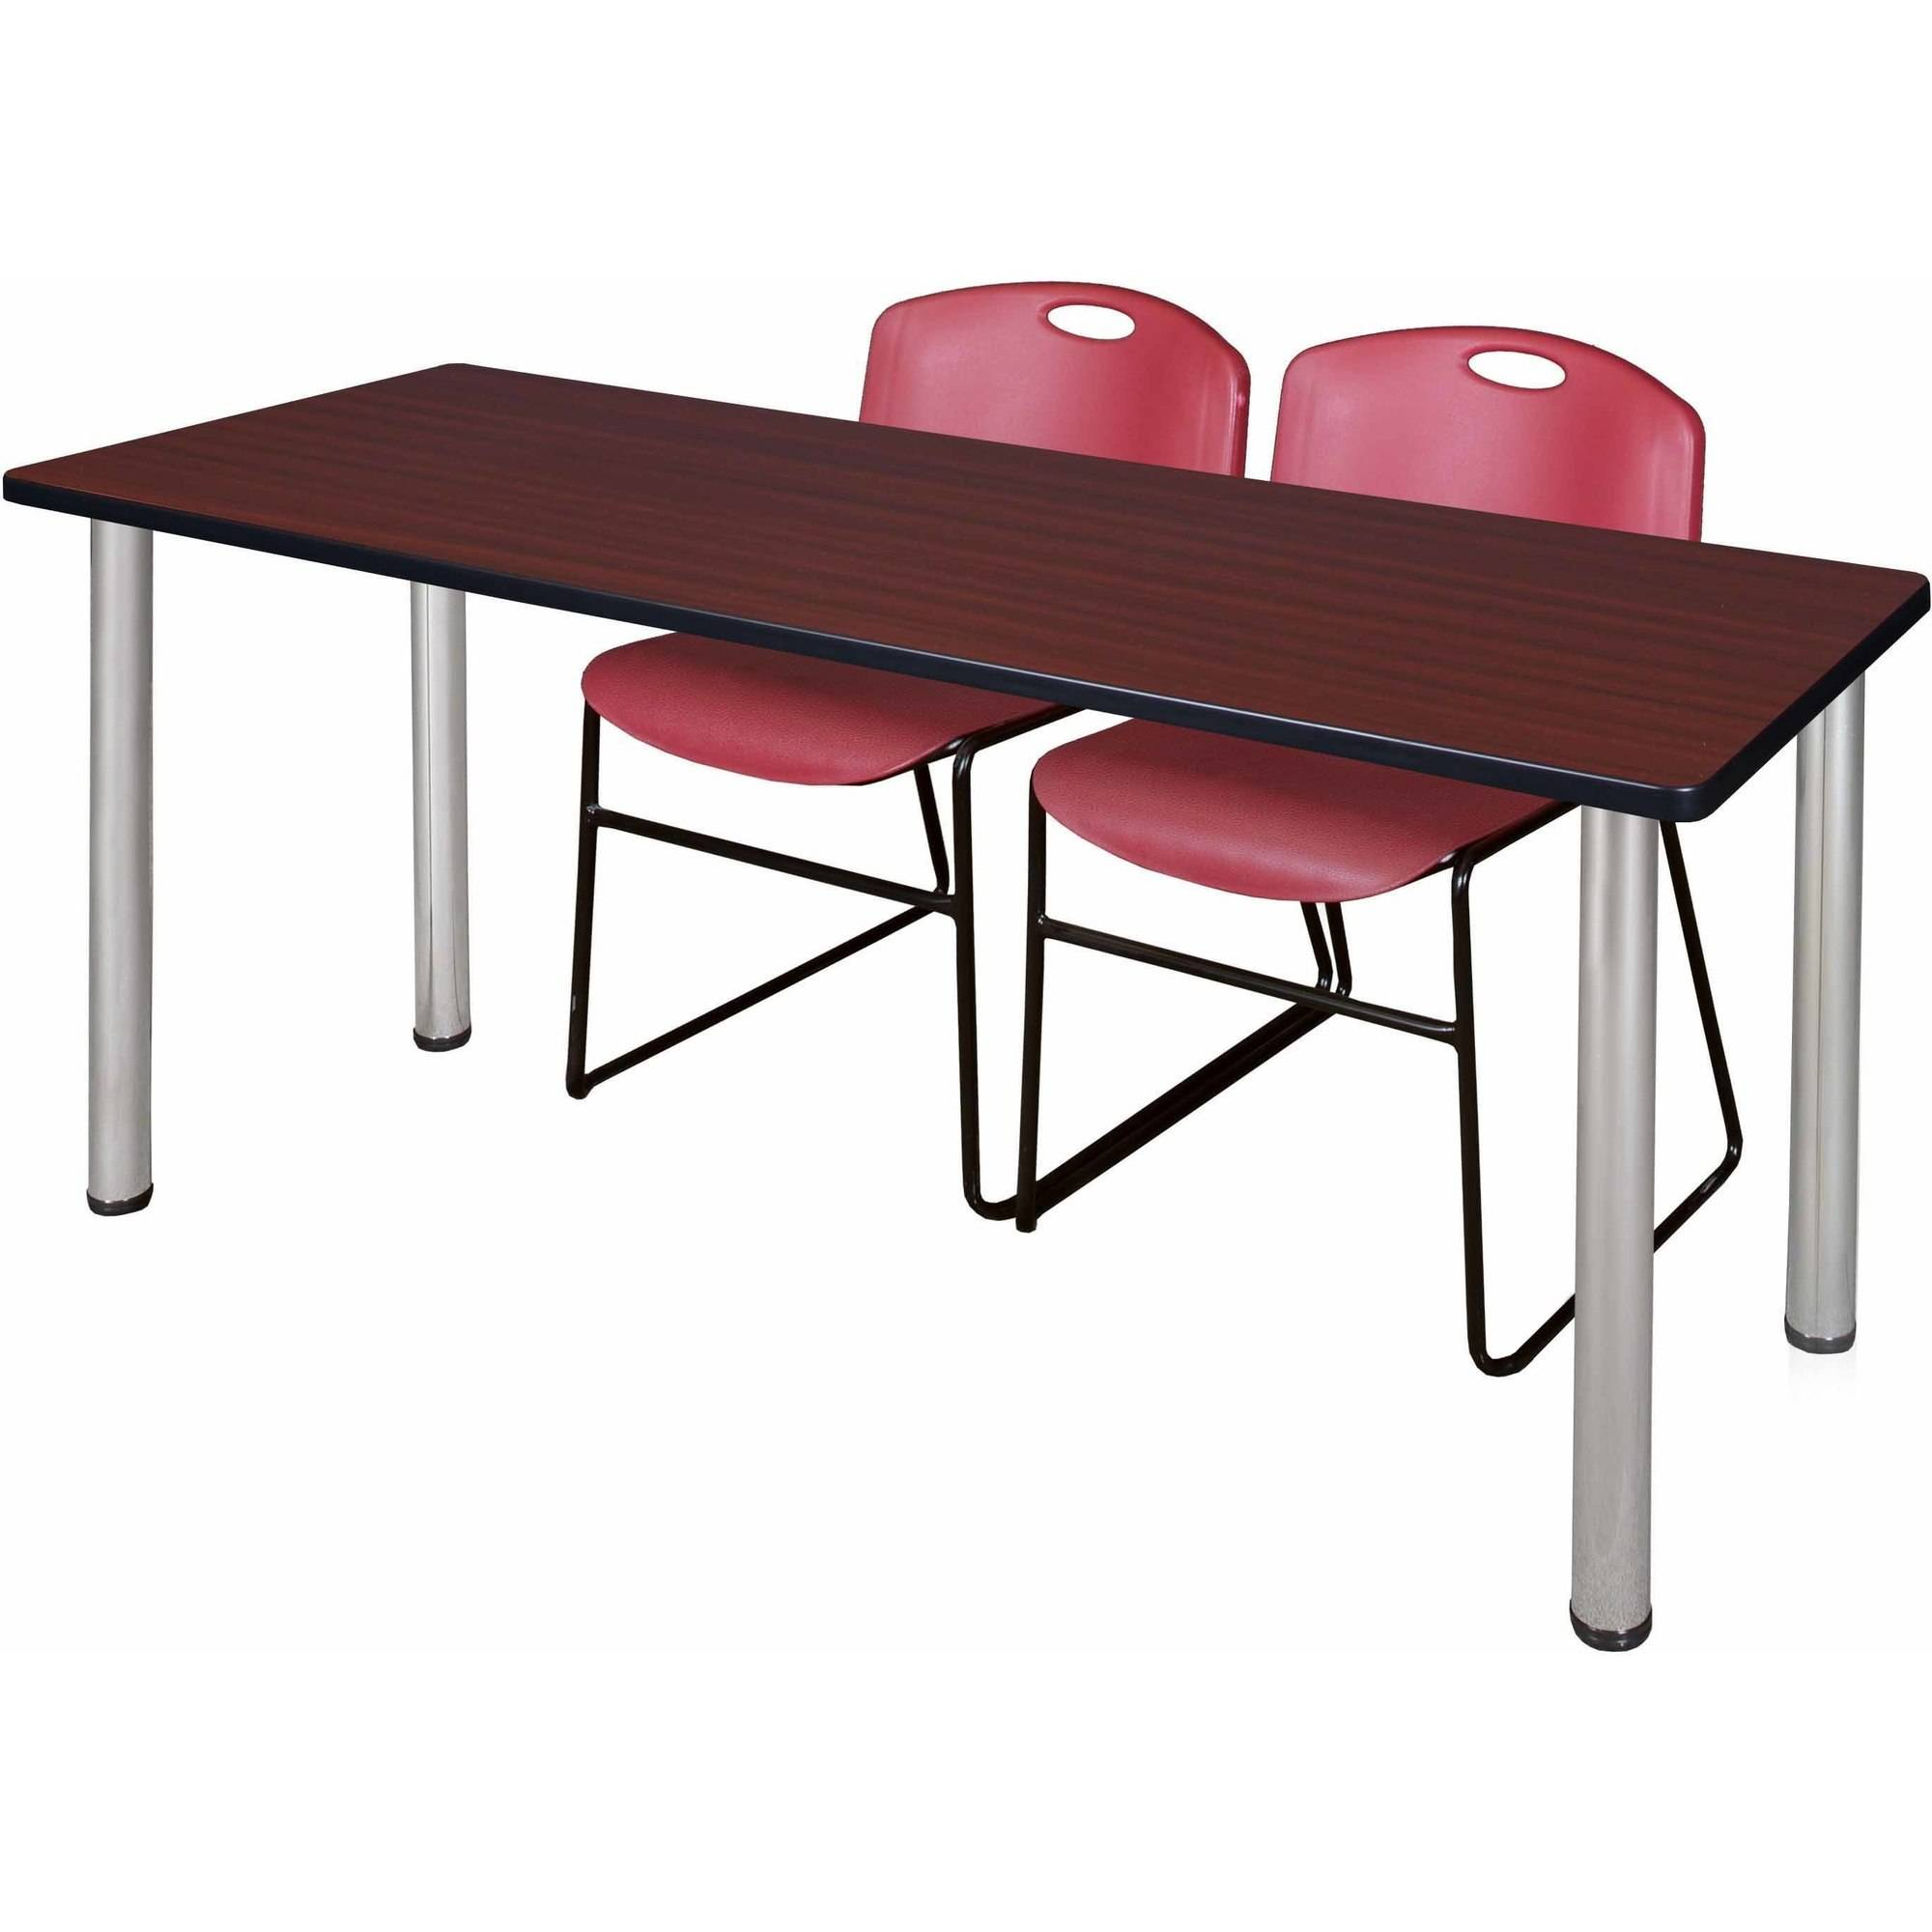 "Regency Kee 66"" x 24"" Training Table, Mahogany/Chrome and 2 Zeng Stack Chairs, Multiple Colors"